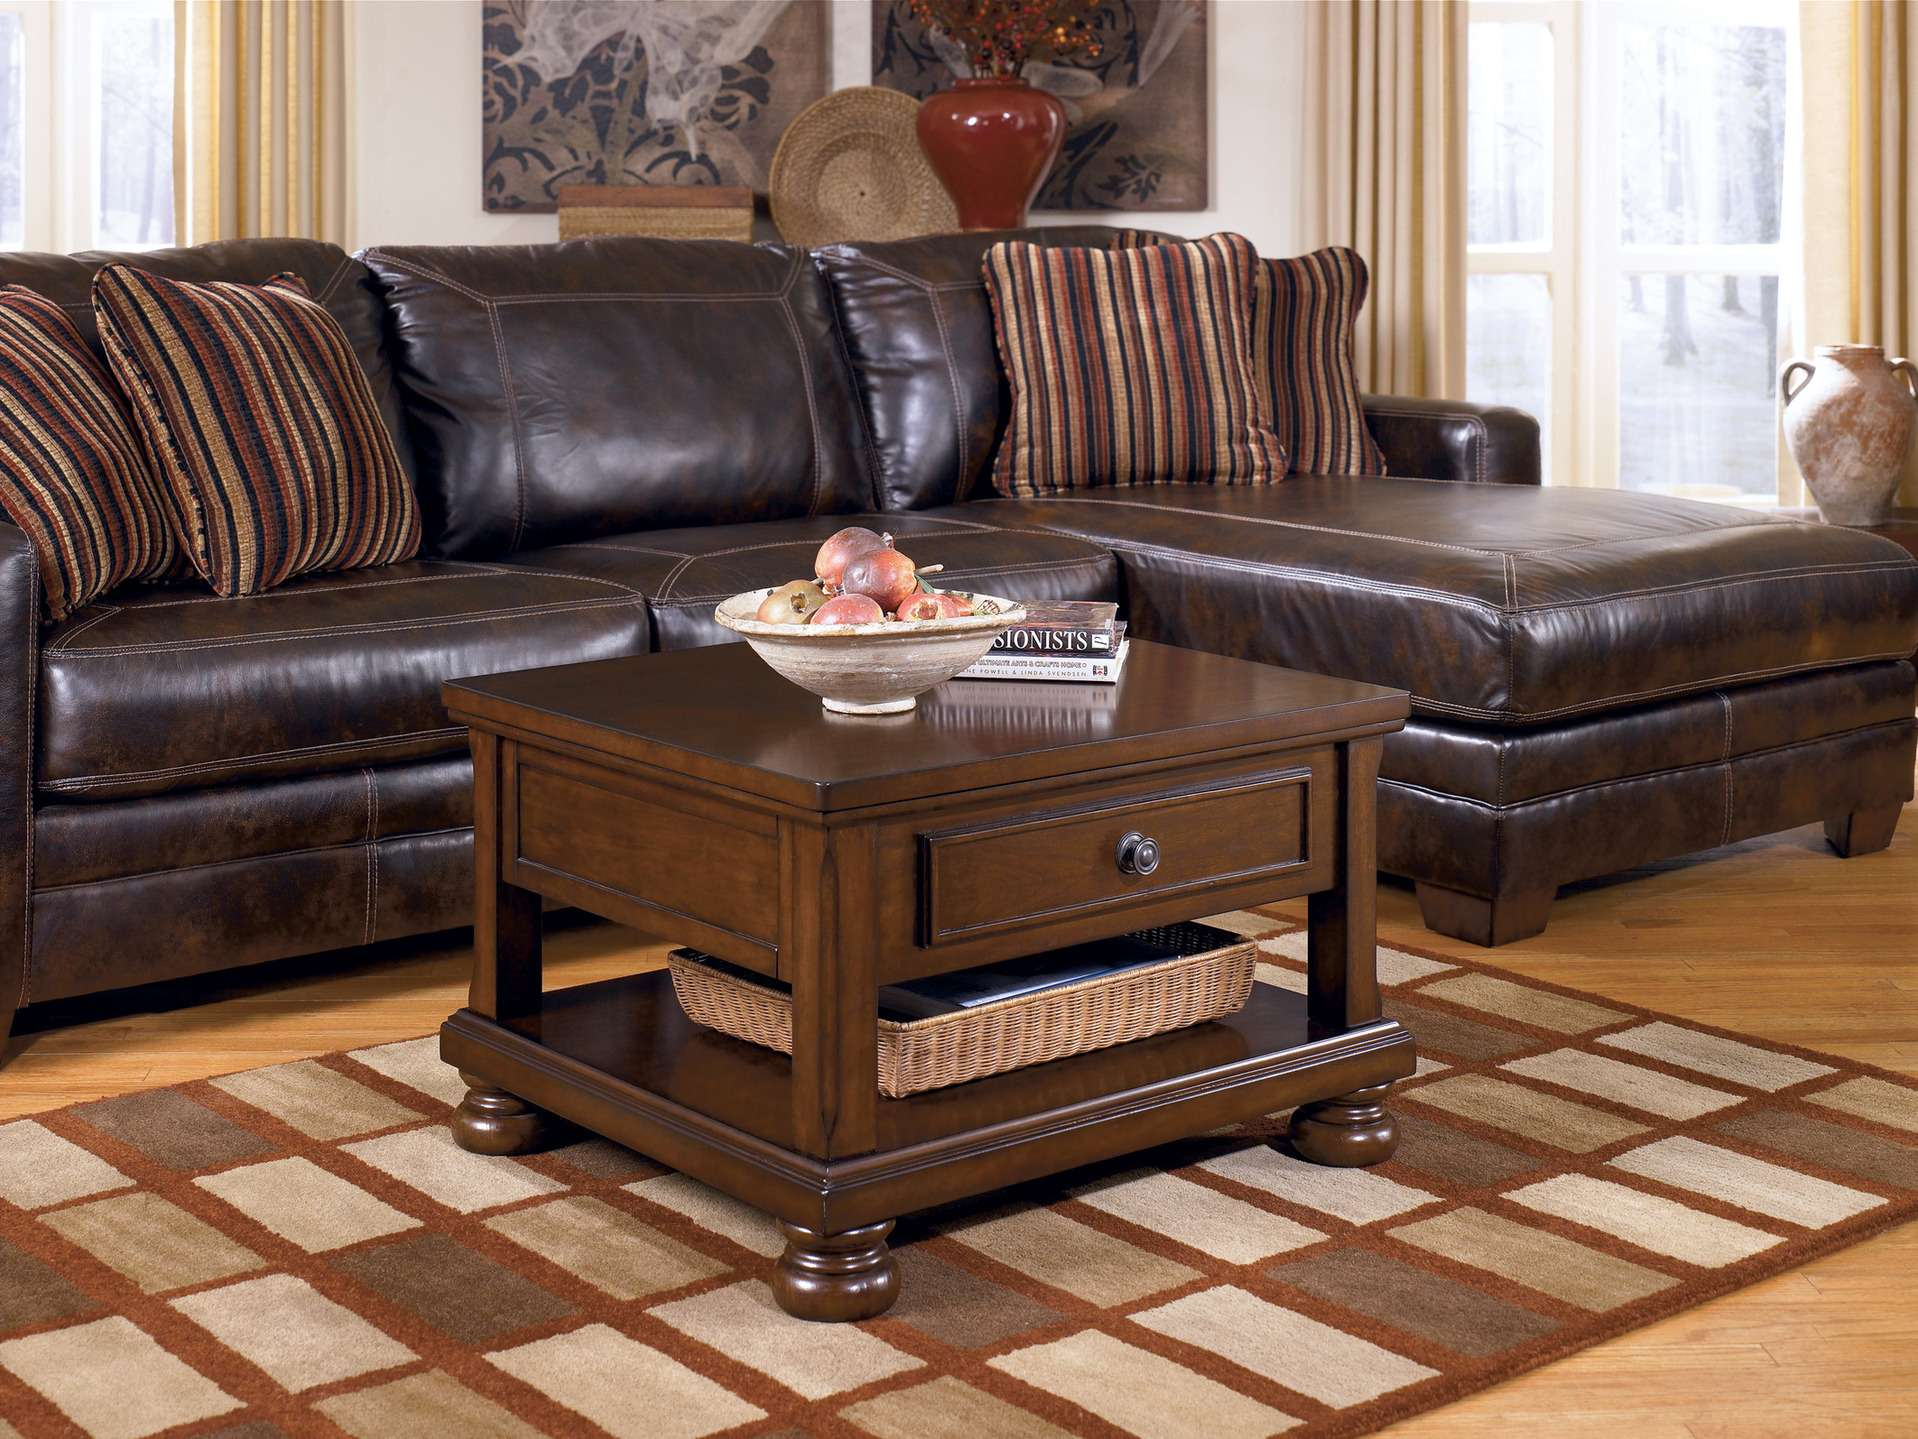 living room amazing decorating chocolate brown furniture leather sectional sofa varnished wood coffee table shelves gingham wool rug what color end tables with dark dog kennel